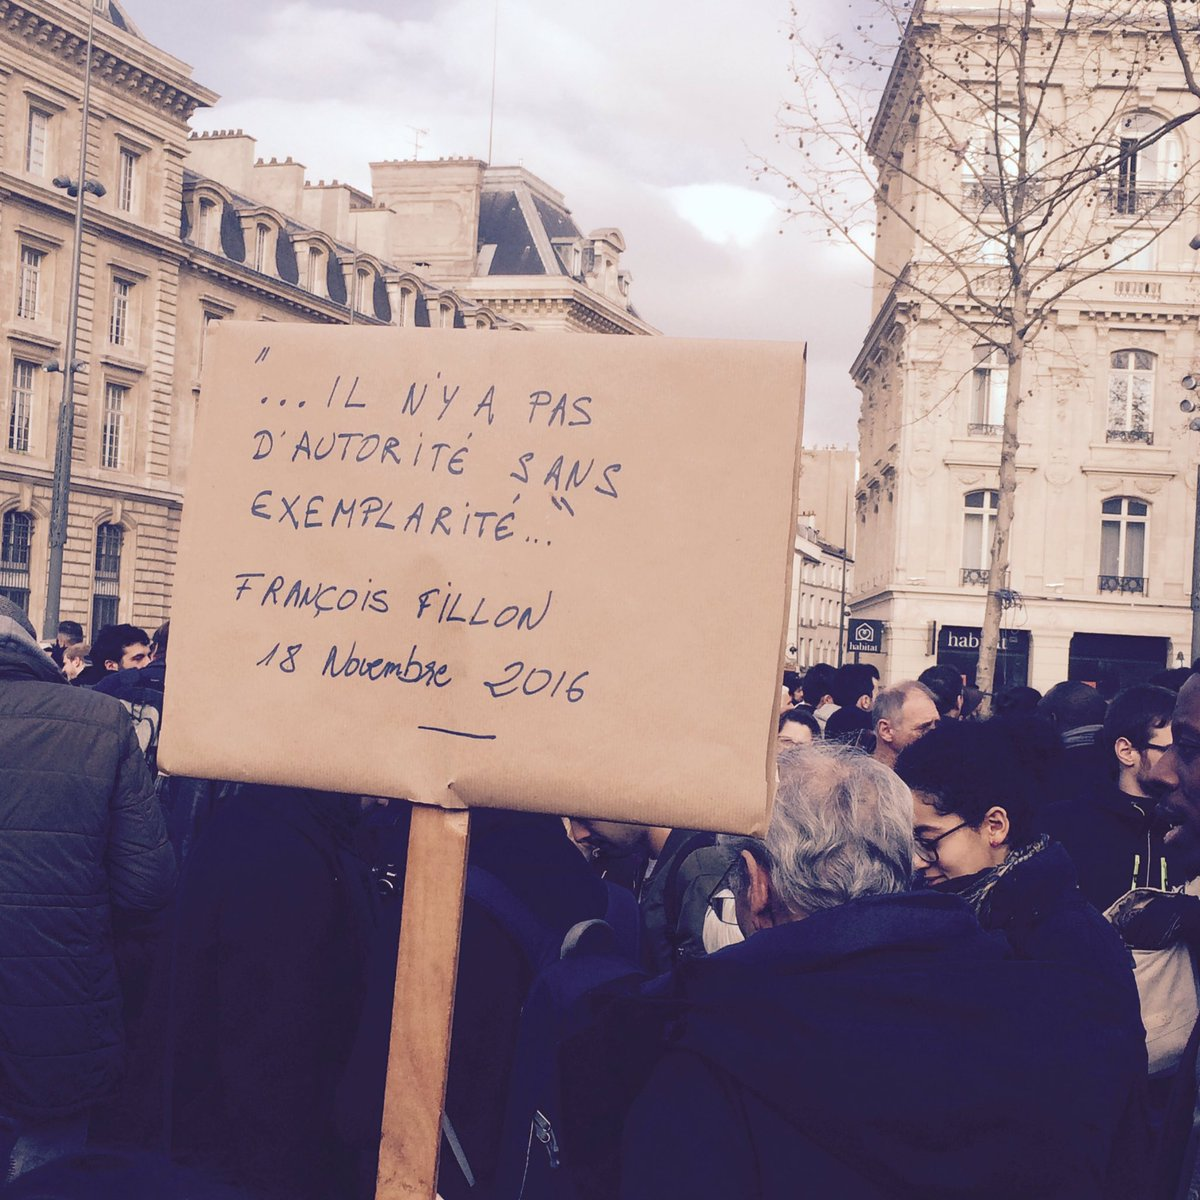 #France #Update A François Fillon quote on exemplarity during #stopcorruption protests in #Paris Via @fabricearfi<br>http://pic.twitter.com/ayT2AzPgs2